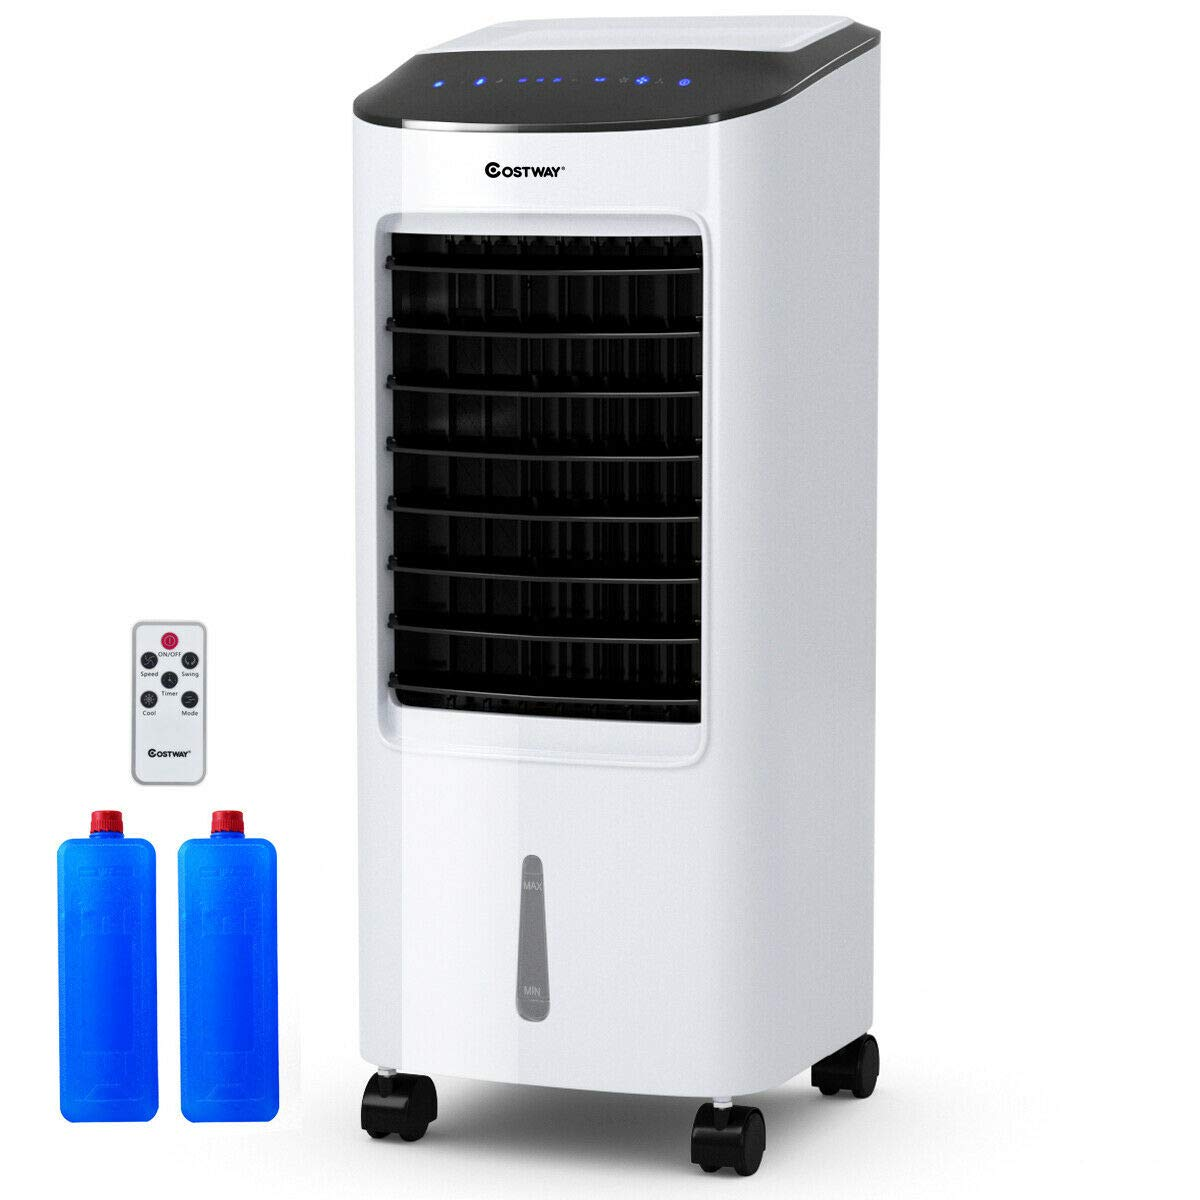 COSTWAY Evaporative Cooler, Portable Bladeless Air Cooler, Electric Fan & Humidifier with Remote Control, LCD Display, 3 Modes Air Conditioner for Indoor Home Office Dorms (29-Inch)